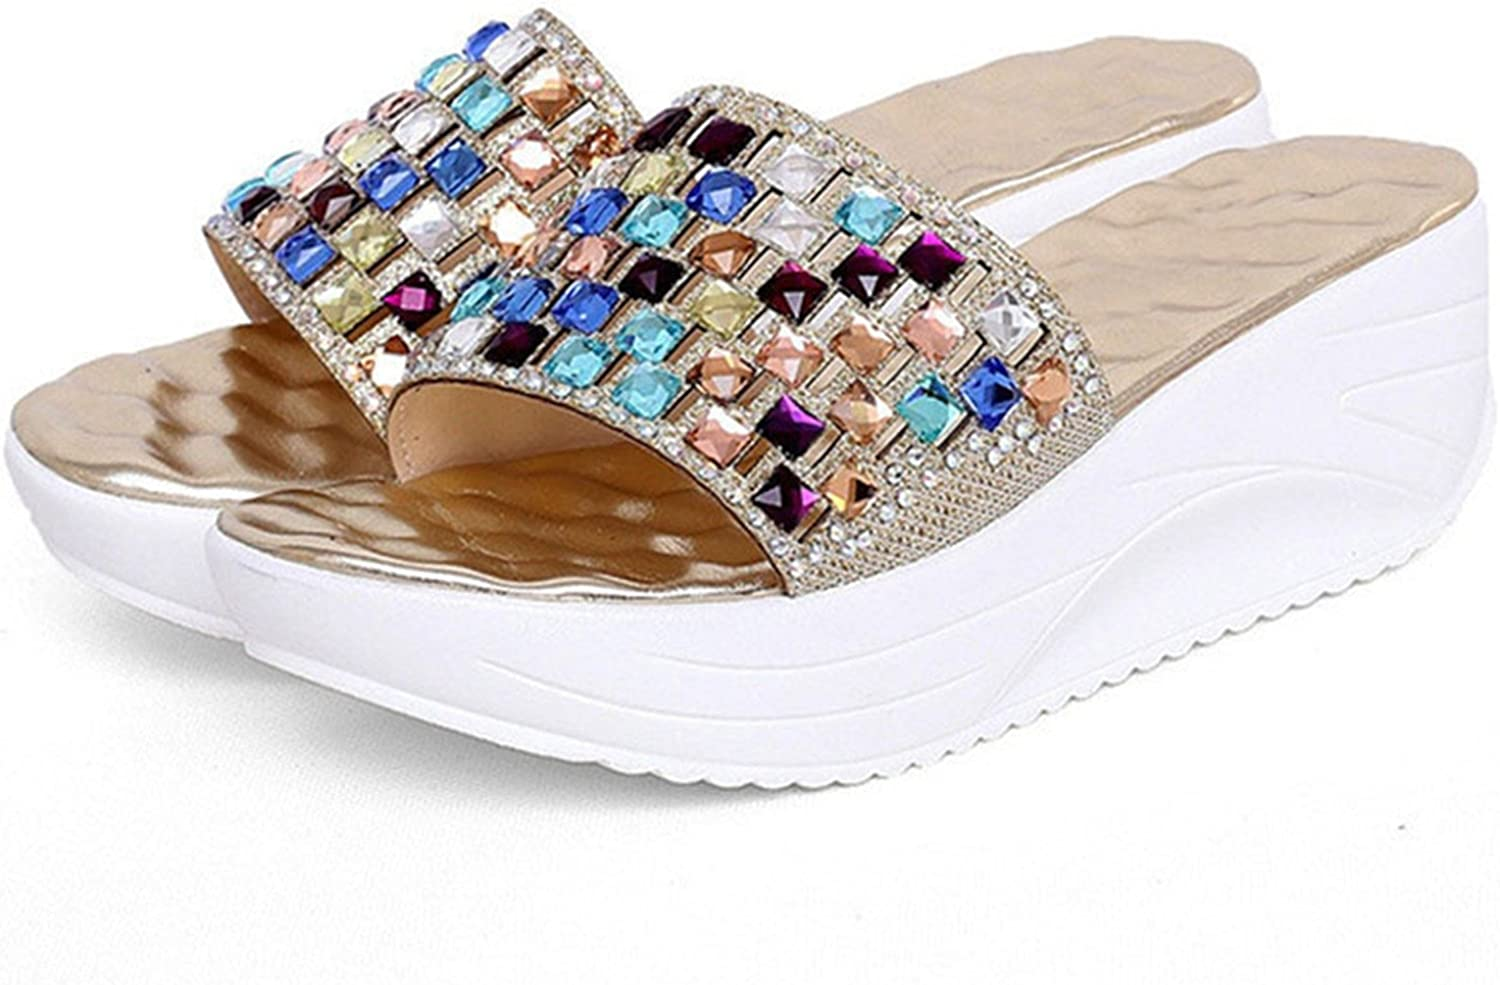 Leroyca Women colorful Rhinestone Slipper Wedge Platform shoes Crystal Flip Flops Sandals